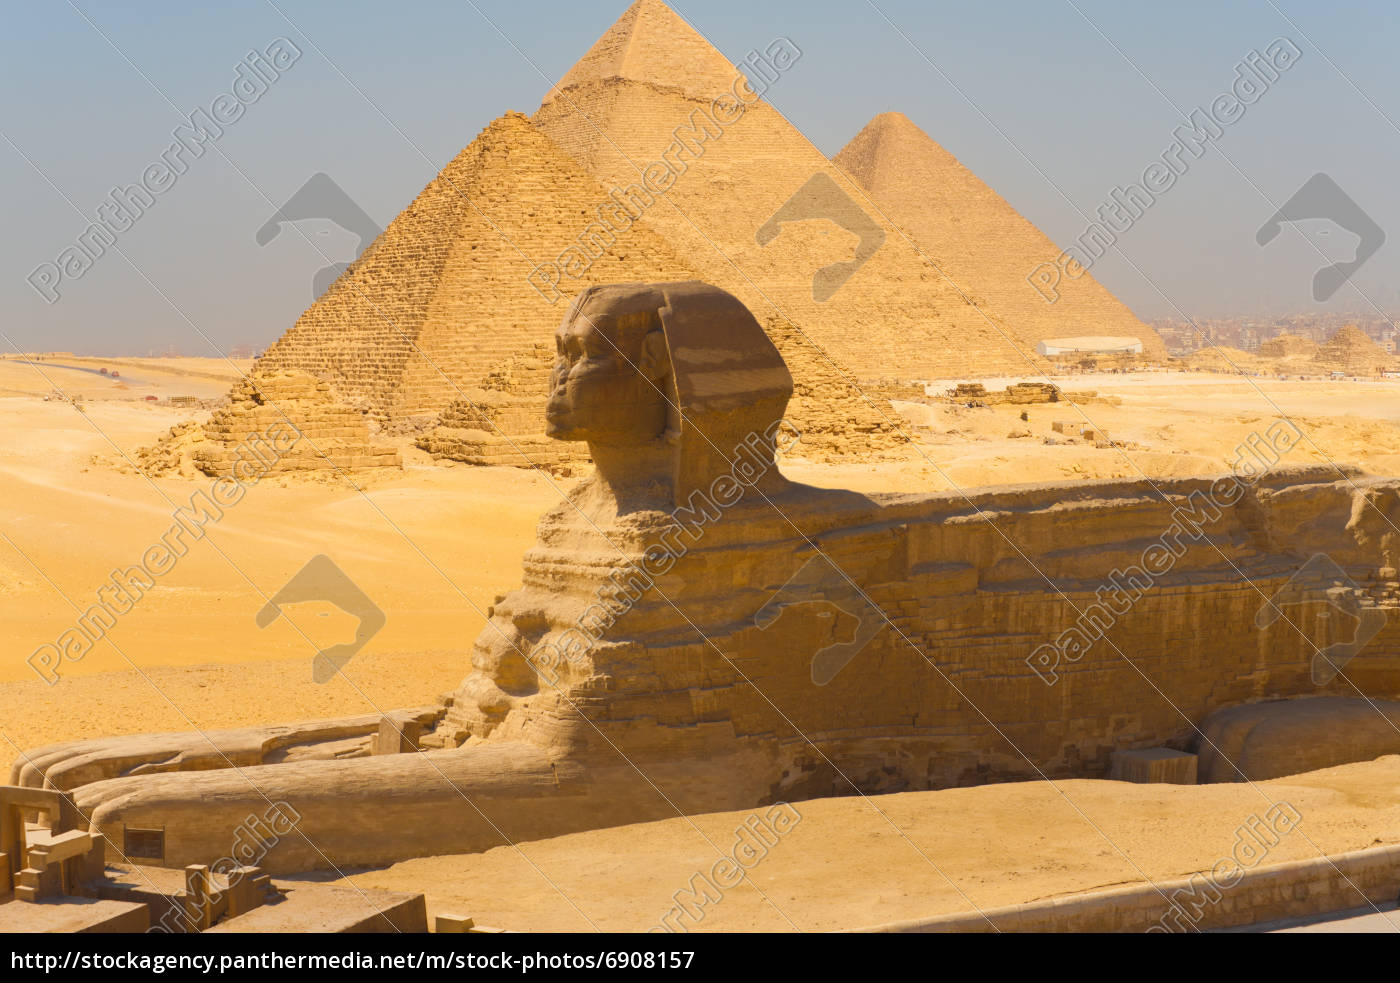 sphinx seitenansicht pyramidengiza verbund stockfoto. Black Bedroom Furniture Sets. Home Design Ideas